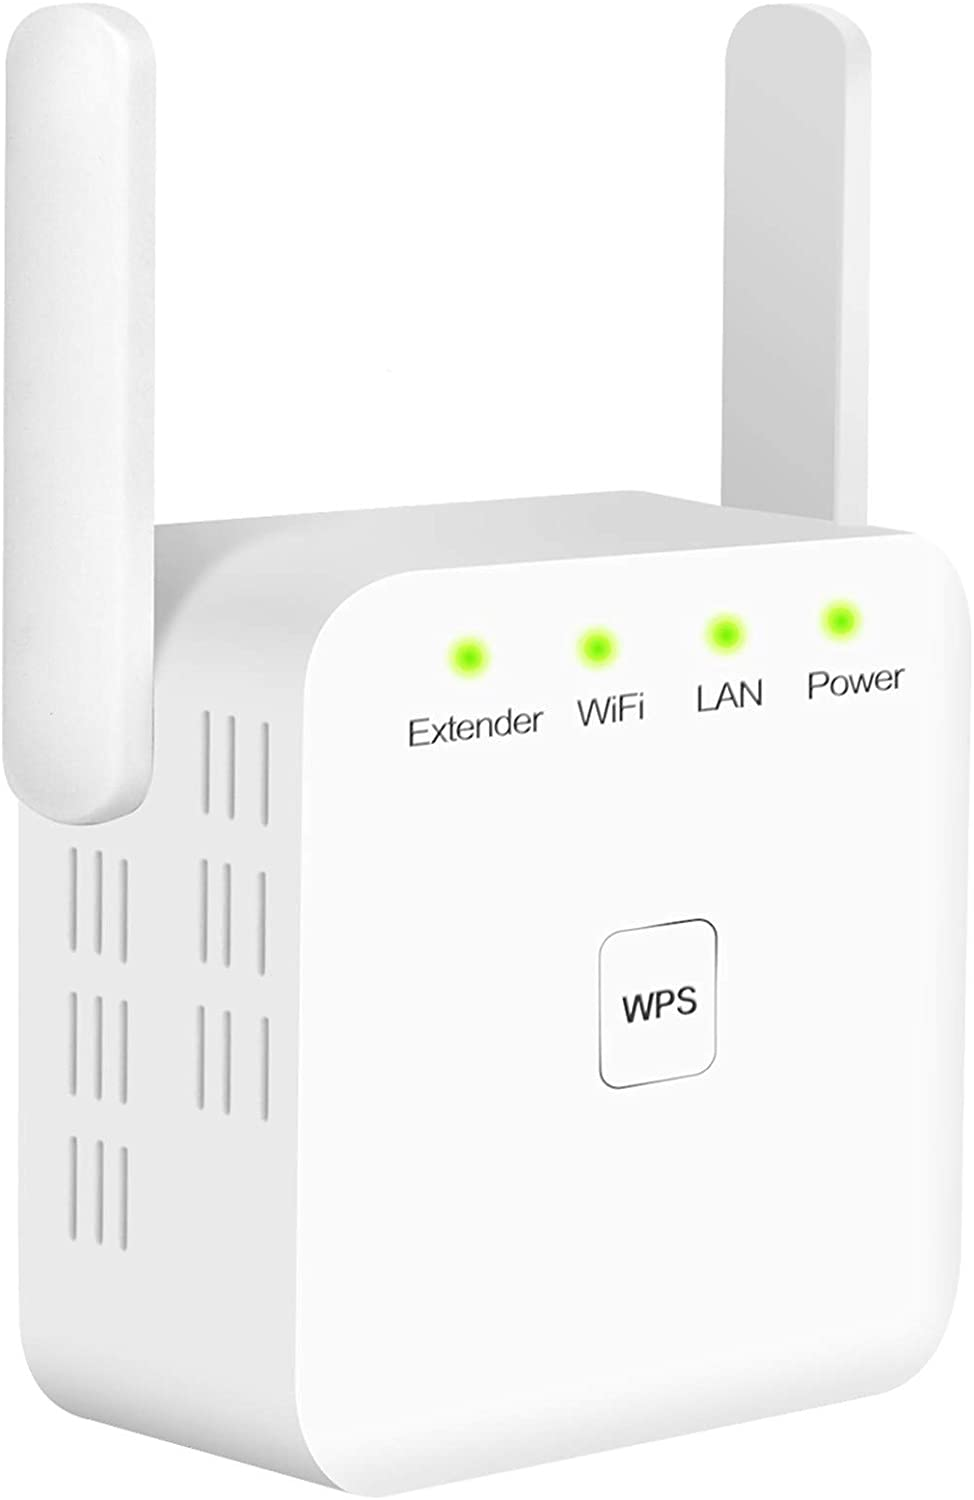 White Extend WiFi Signal to Smart Home /& Alexa Devices 300Mbps Wireless Signal Repeater Booster WiFi Range Extender 2 Advanced Antennas 360/° Full Coverage WPS/&One-Click Setting